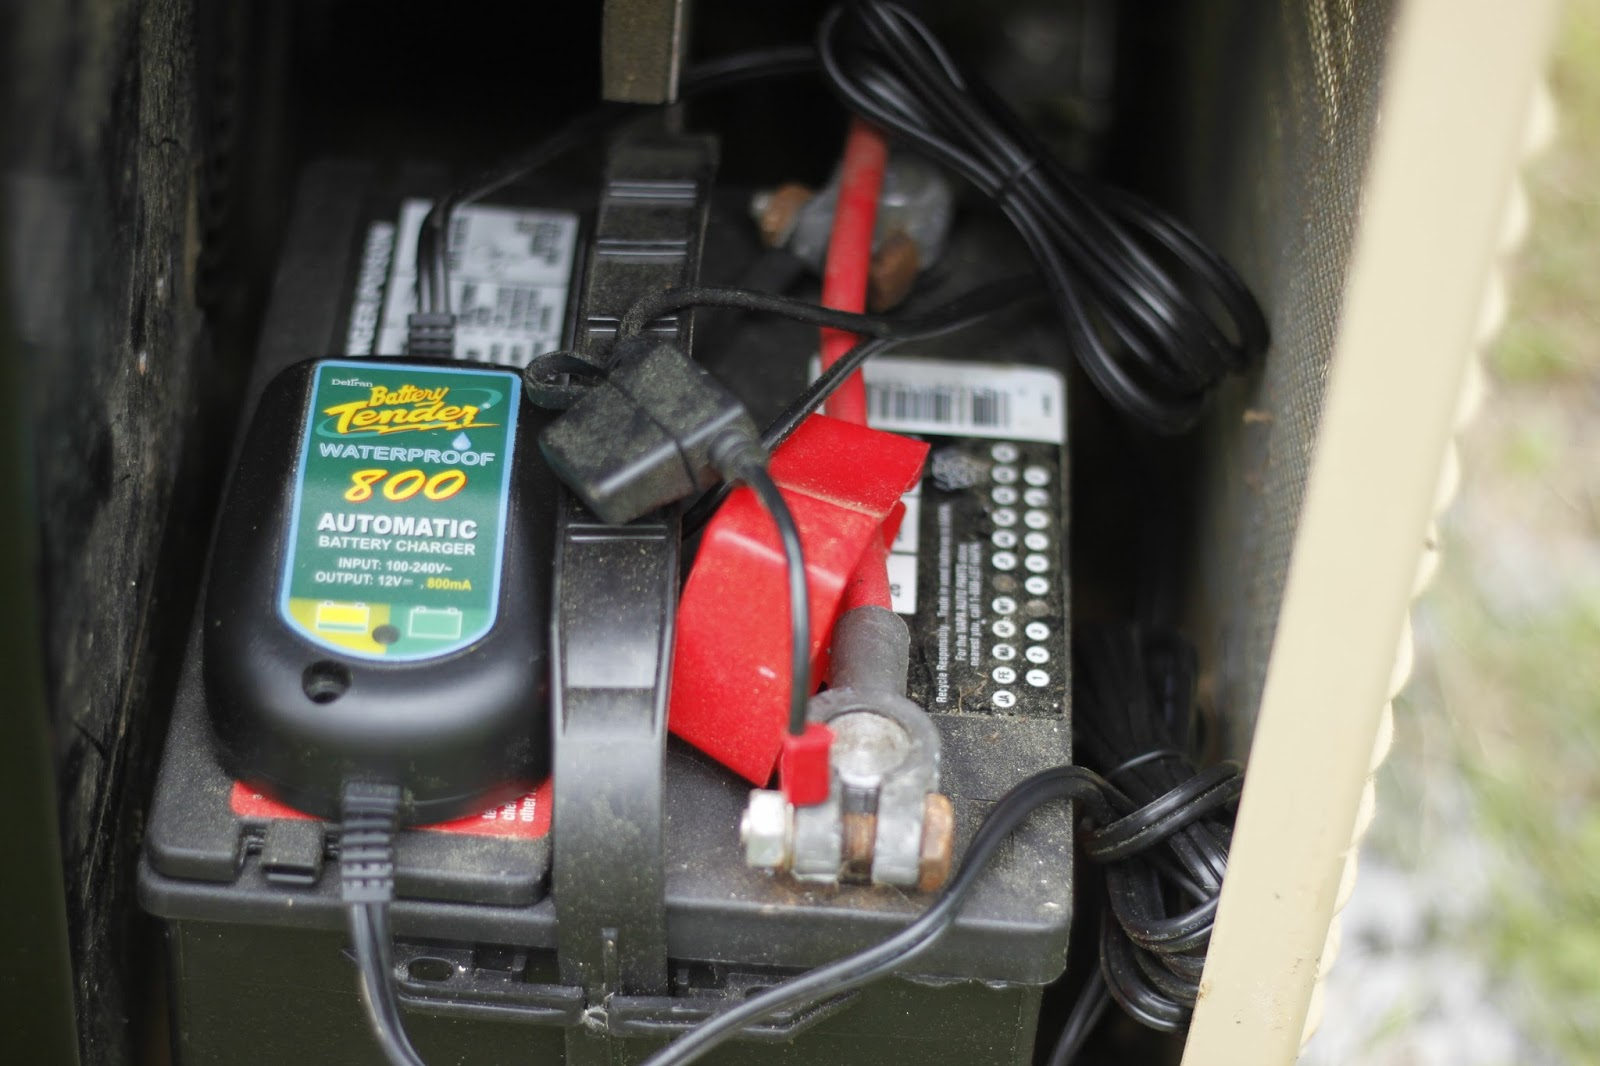 22kw generac generator wiring diagram toyota celica radio fet tricks substitue battery charger for